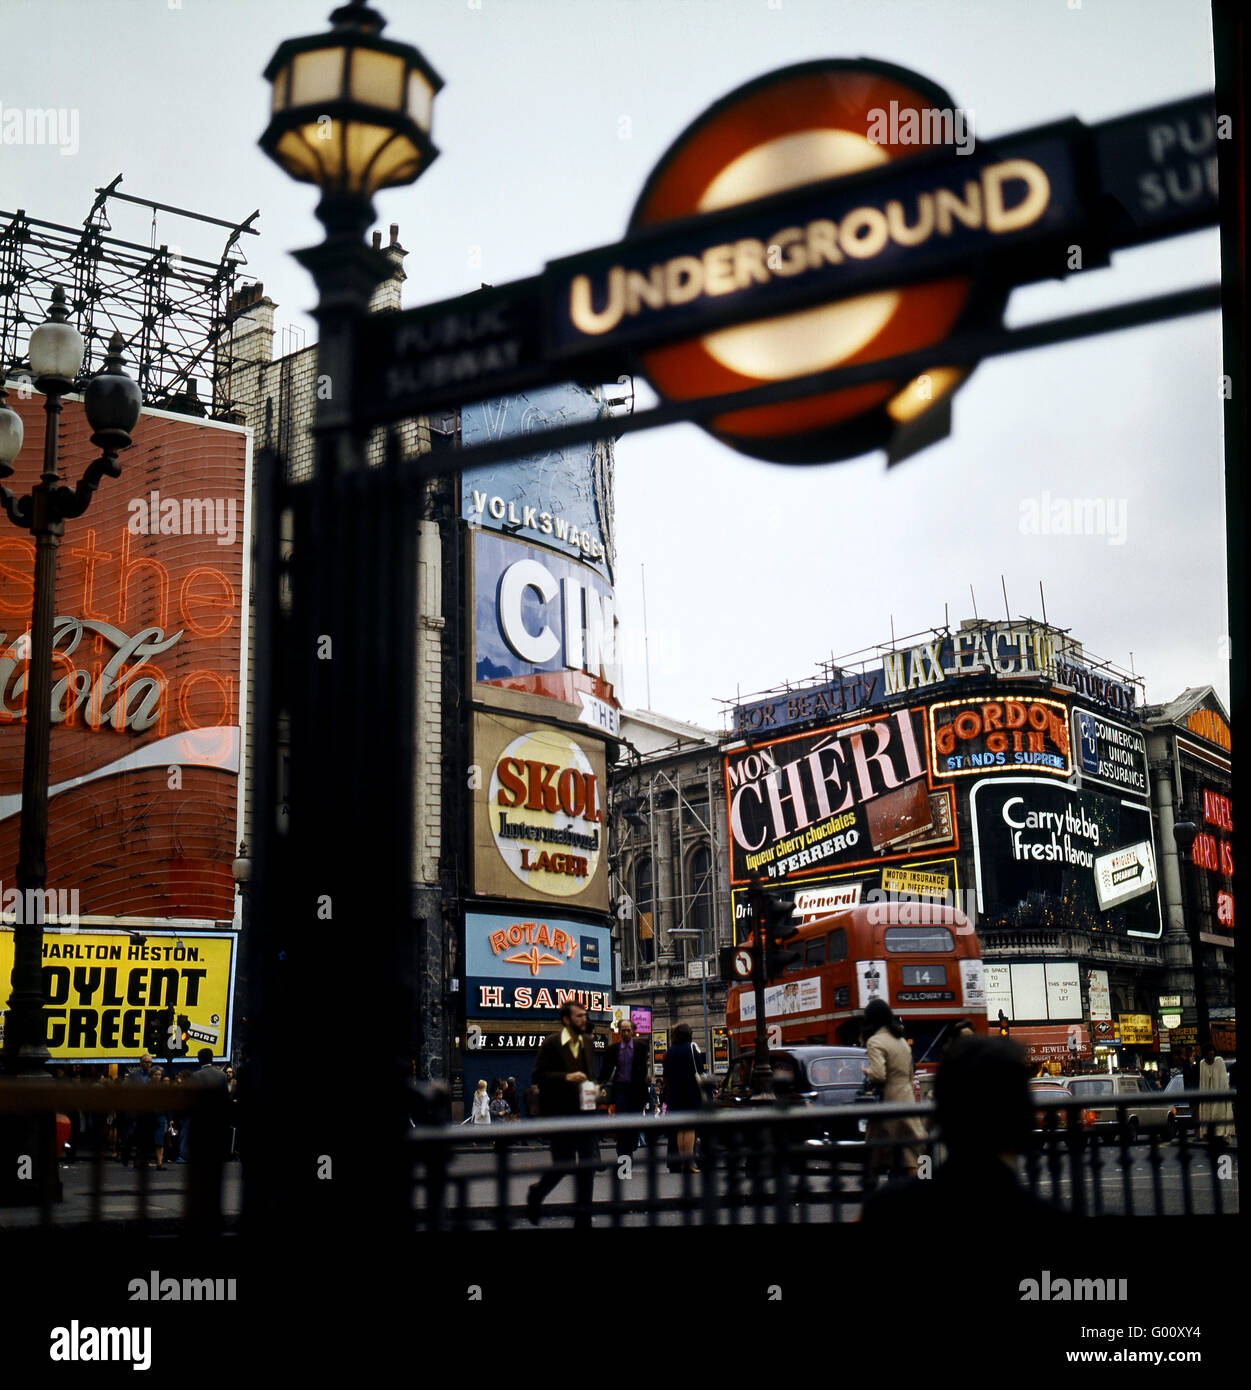 London Picadilly Circus - Stock Image